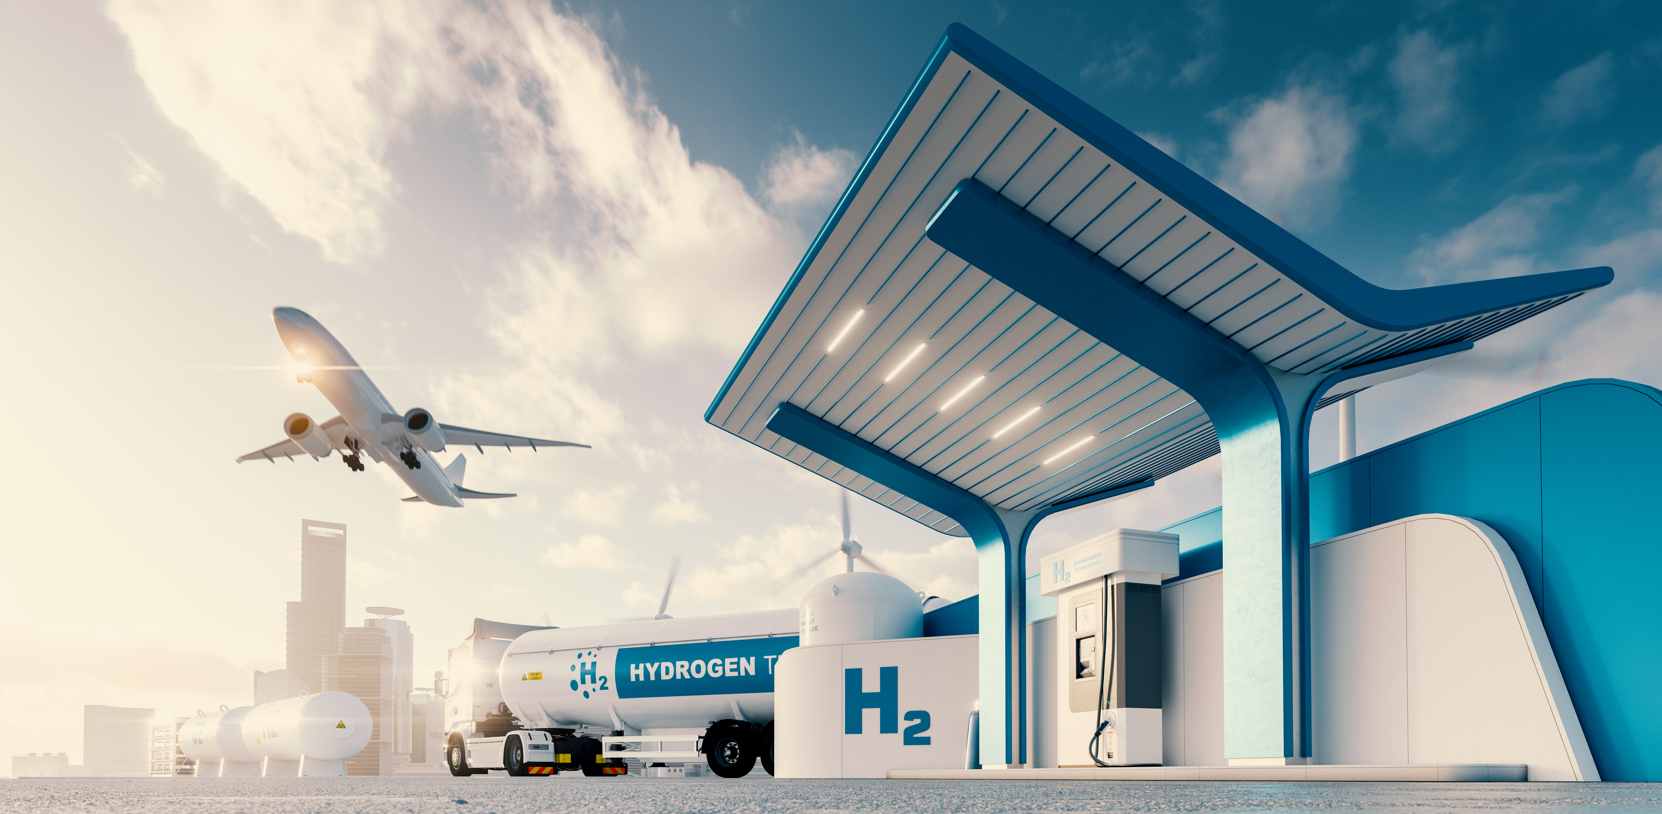 UK hydrogen strategy – a summary of key policy proposals